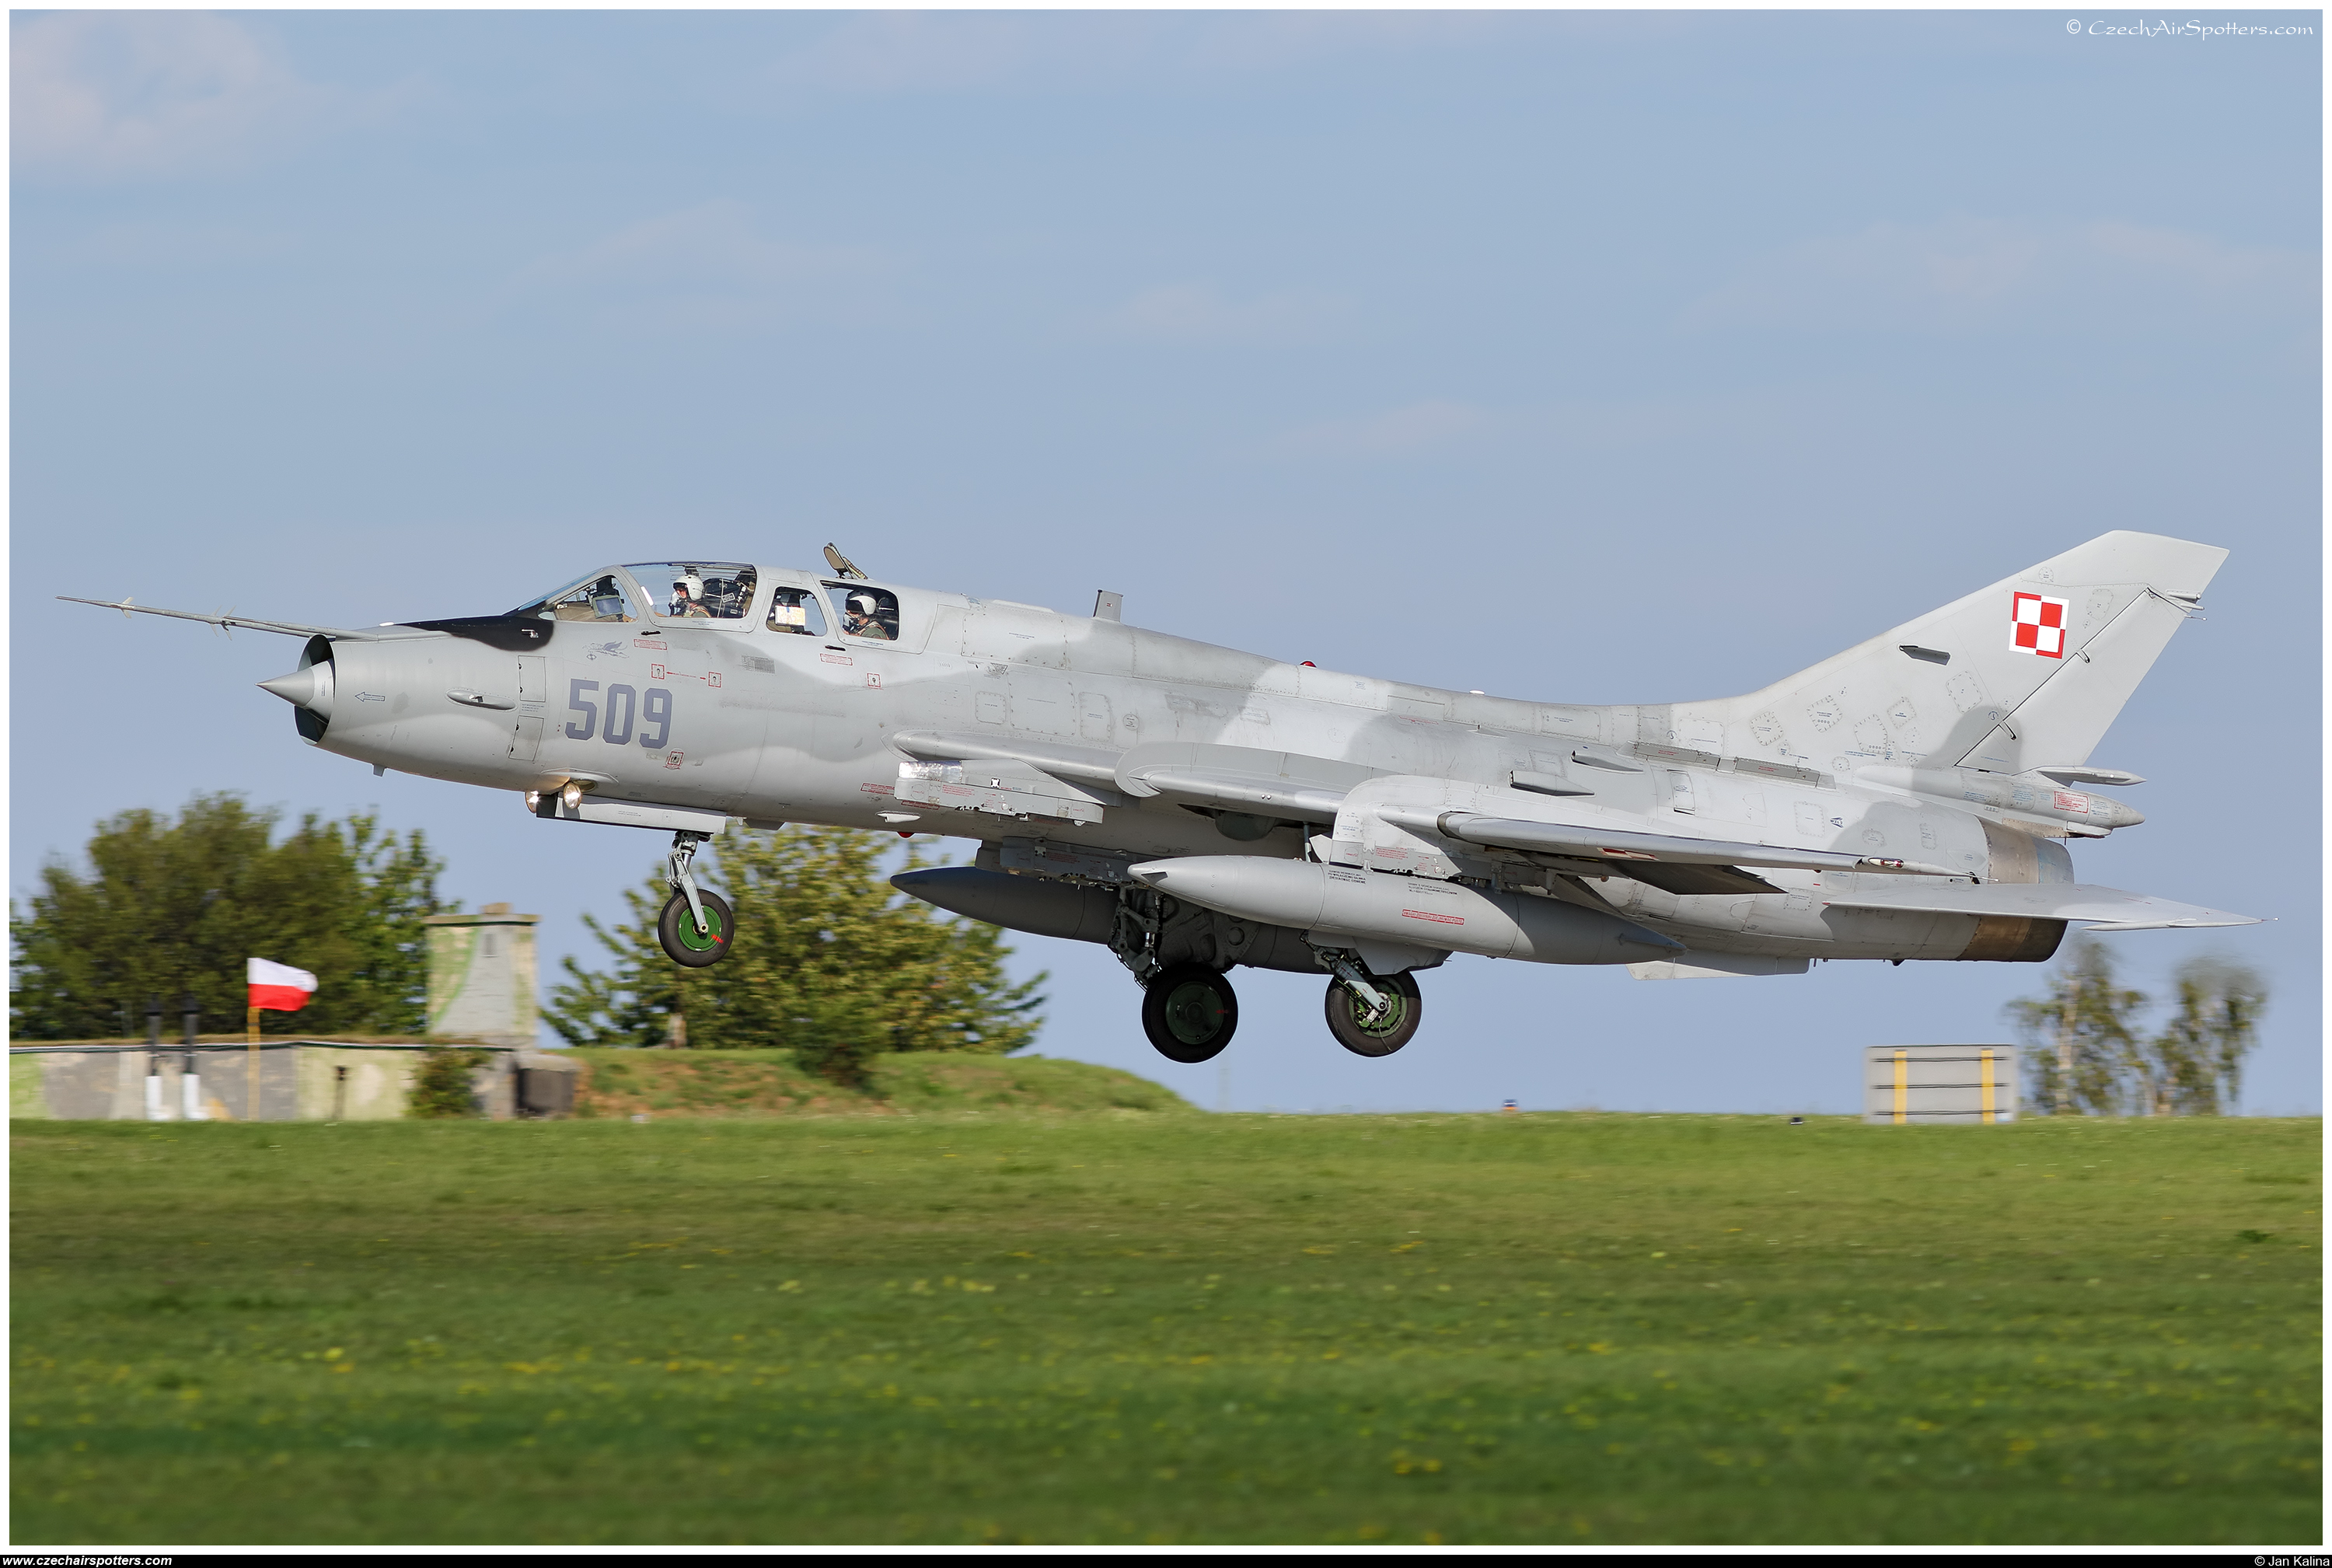 Poland - Air Force – Sukhoi Su-22 UM-3K Fitter G 509